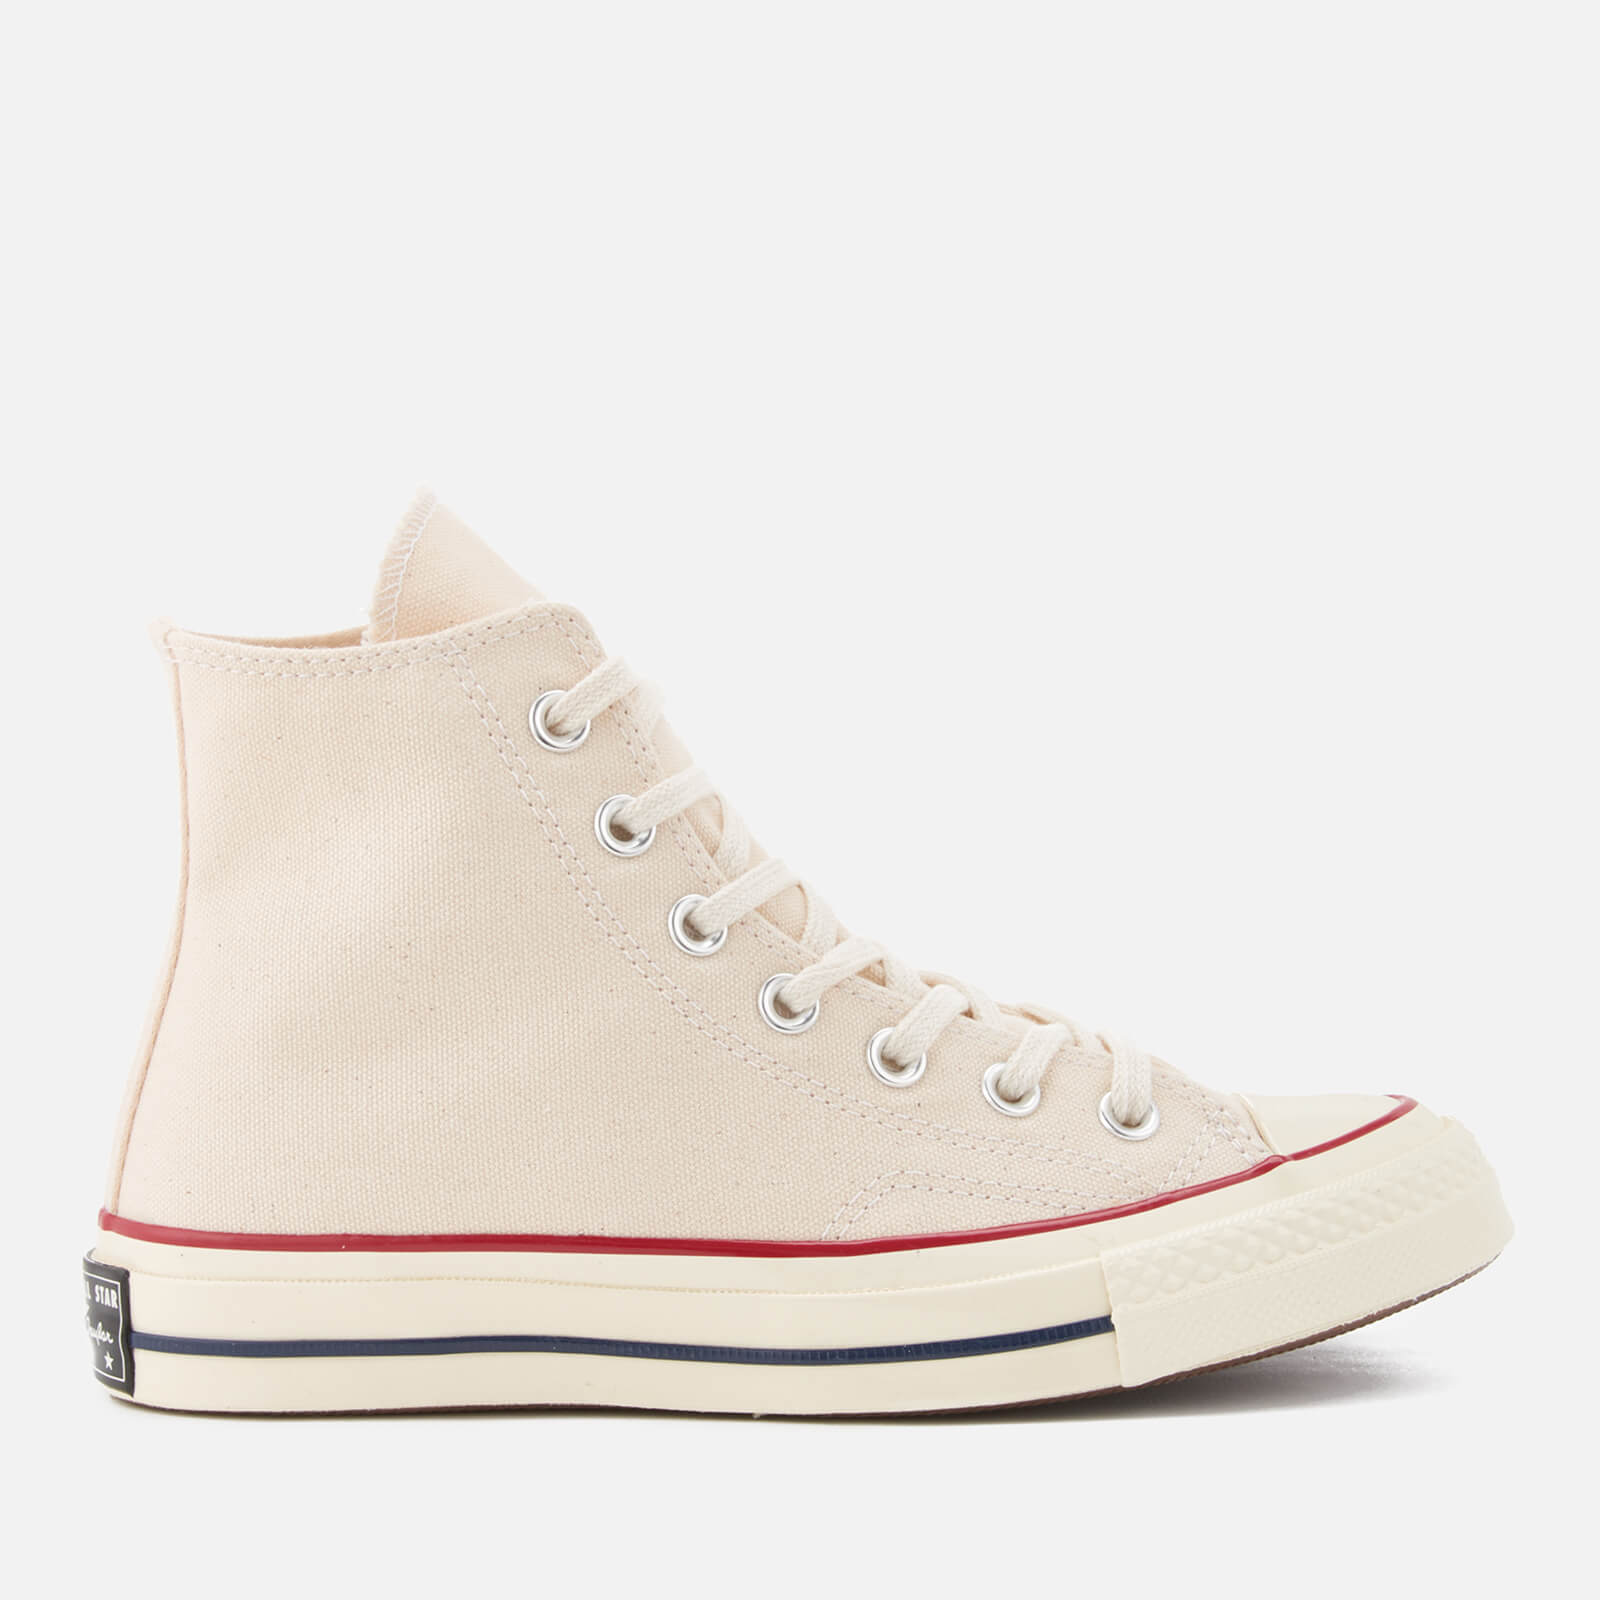 f60d7548e950 Converse Chuck Taylor All Star  70 Hi-Top Trainers - Parchment - Free UK  Delivery over £50